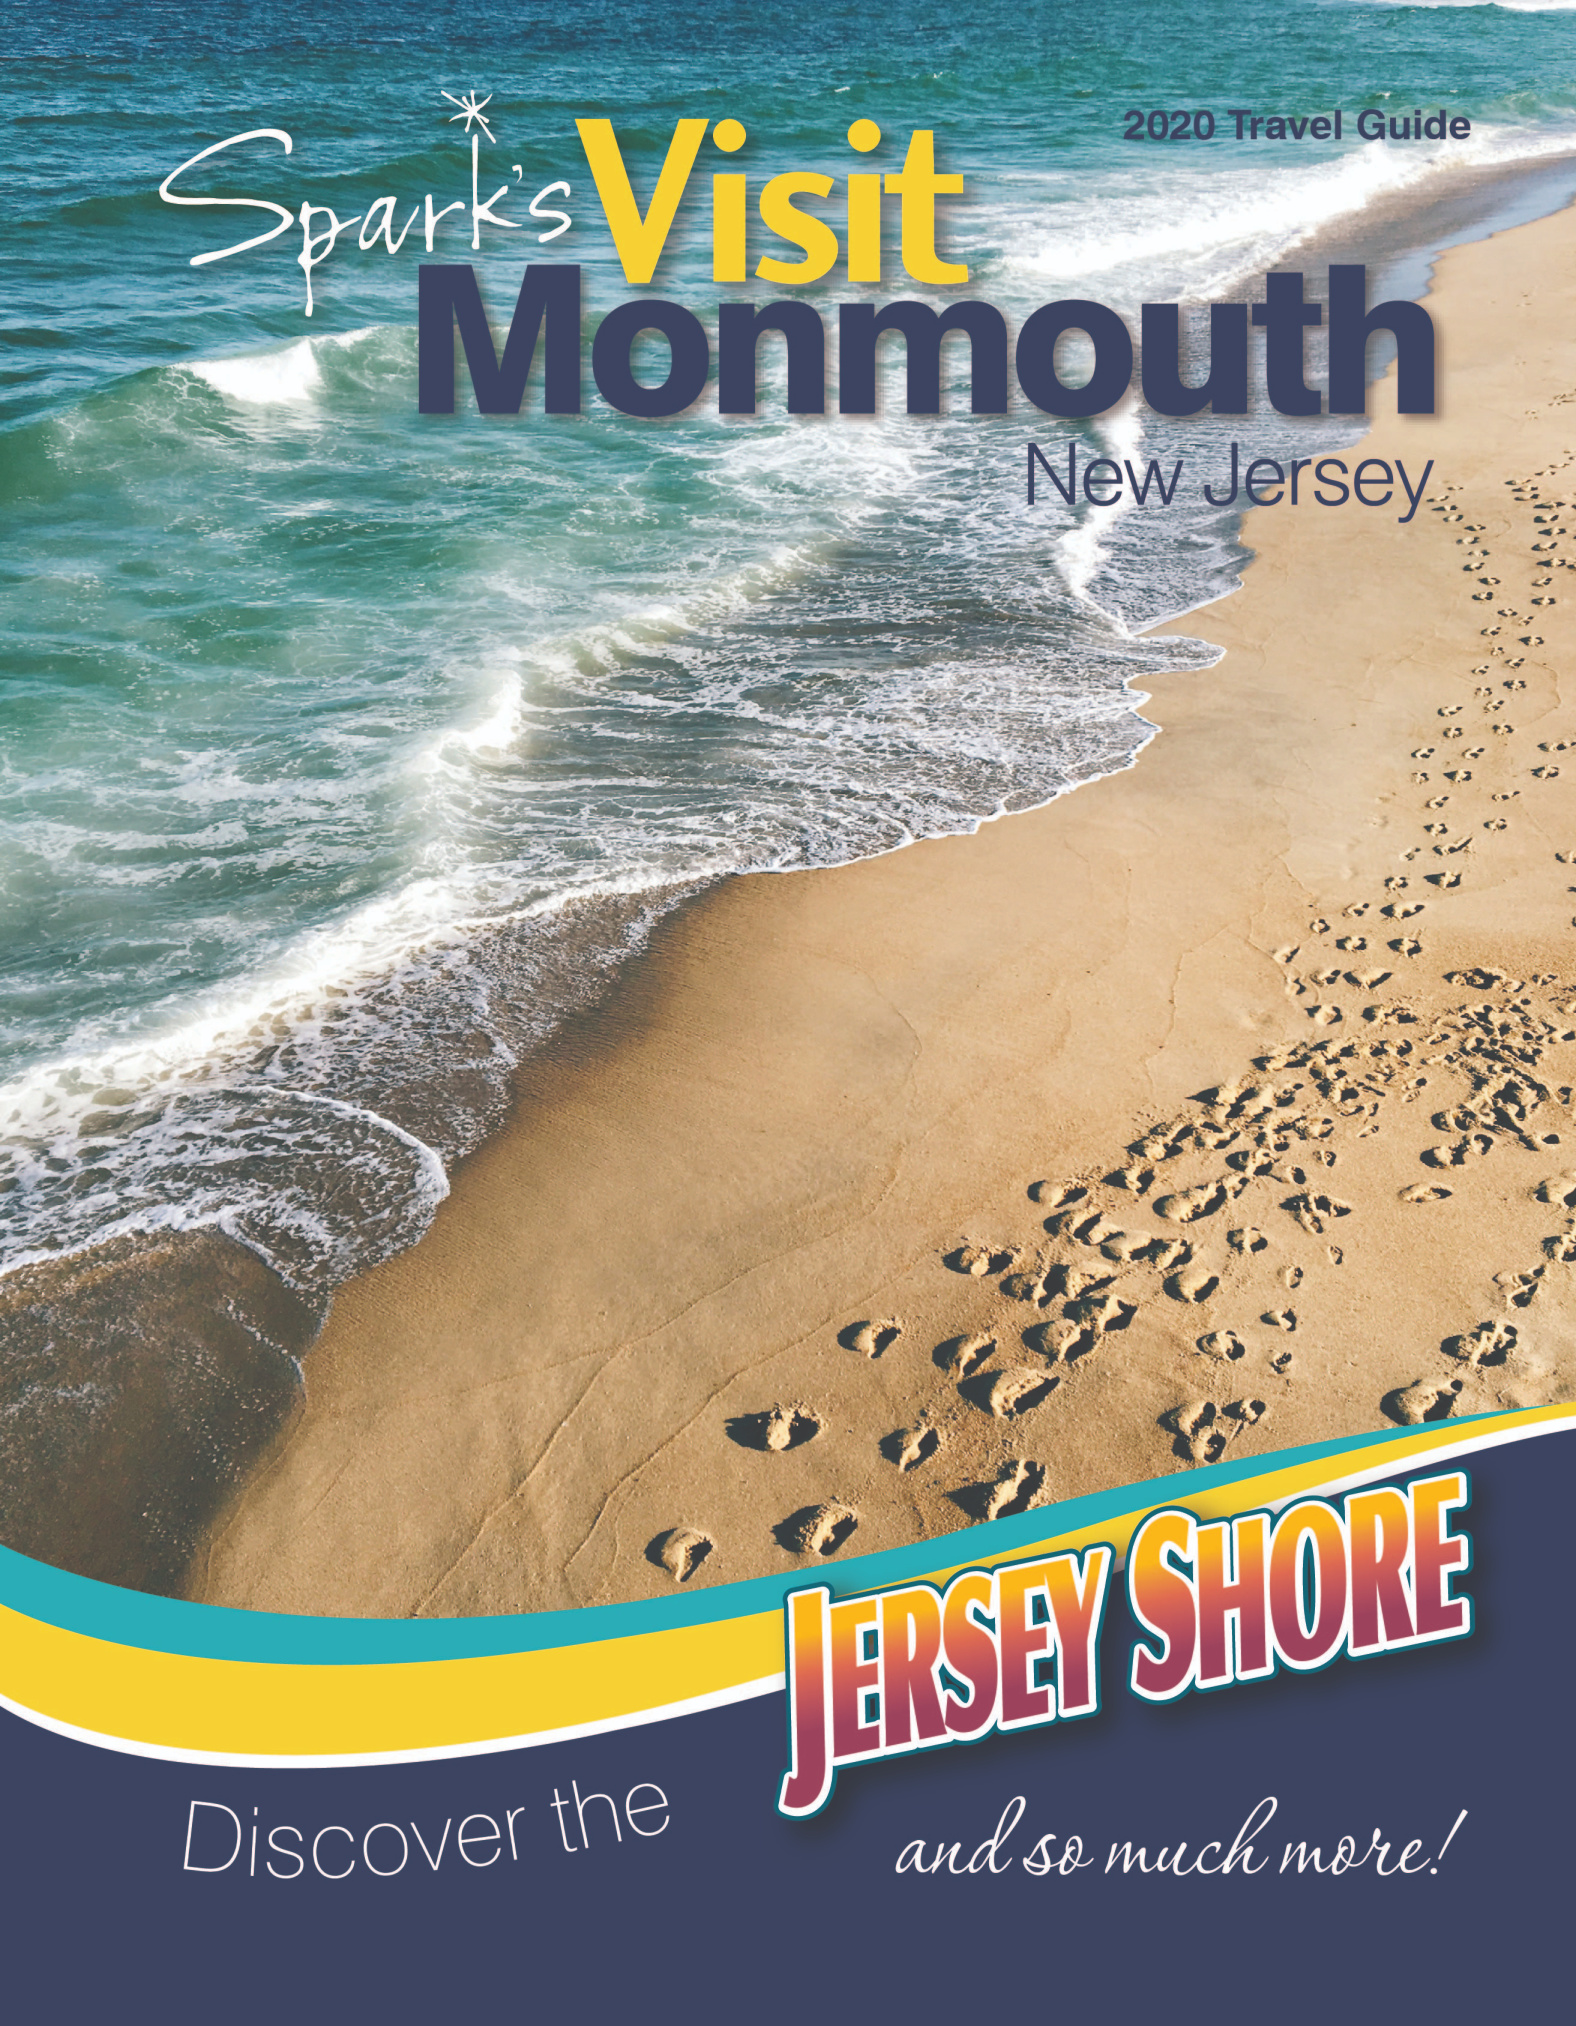 2020 Visit Monmouth Photo Winners!